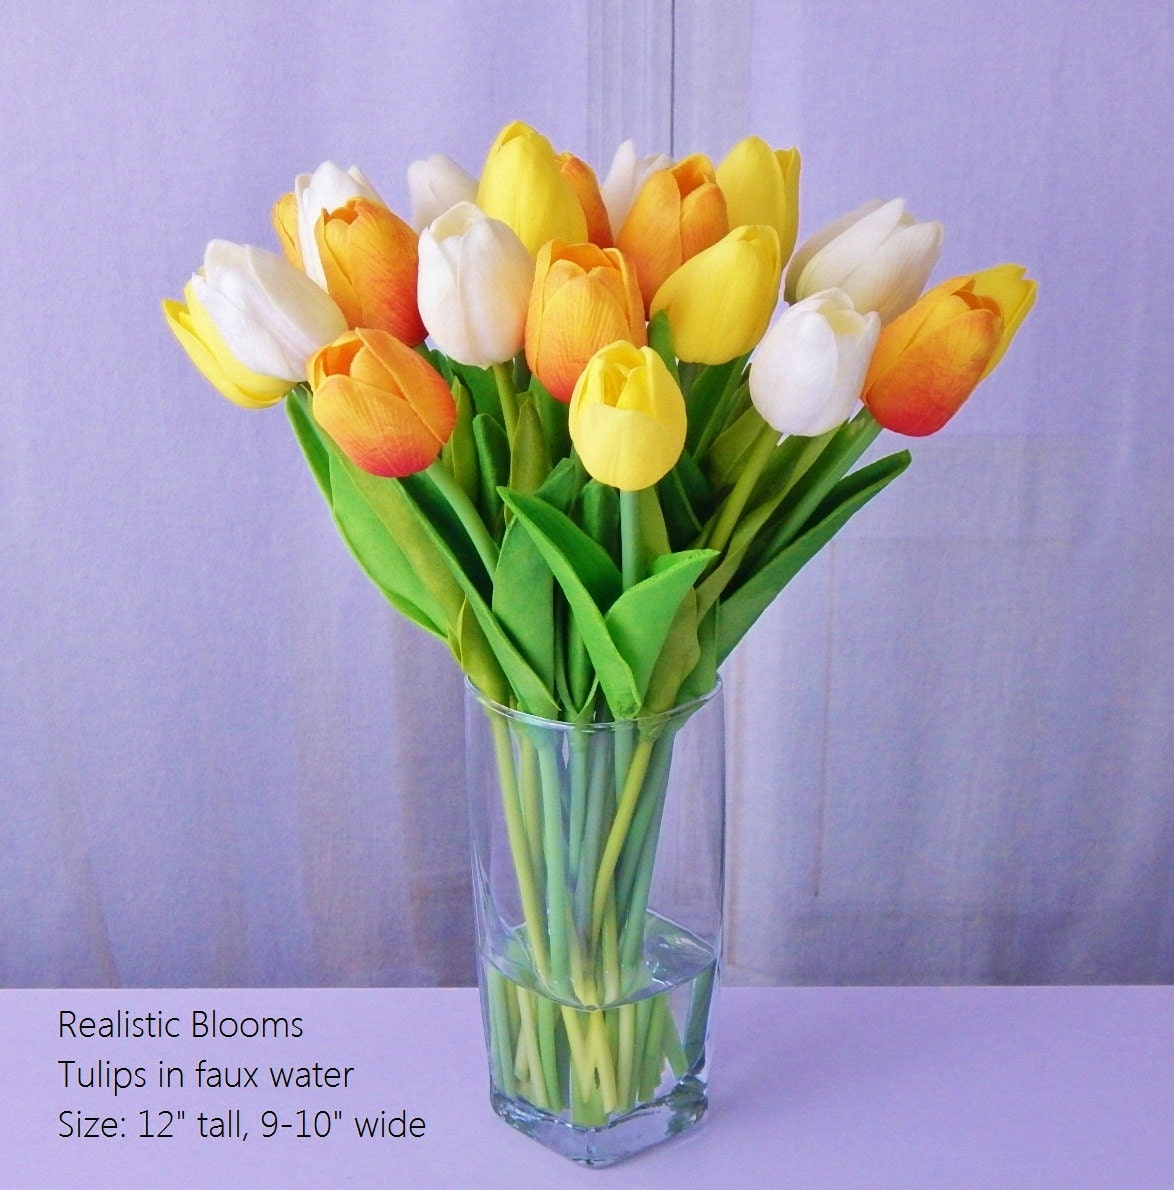 Tuliptulips silk floral arrangement faux water acrylic tuliptulips silk floral arrangement faux water acrylic illusion glass vase real touch flowers yellow orange pink white red reviewsmspy